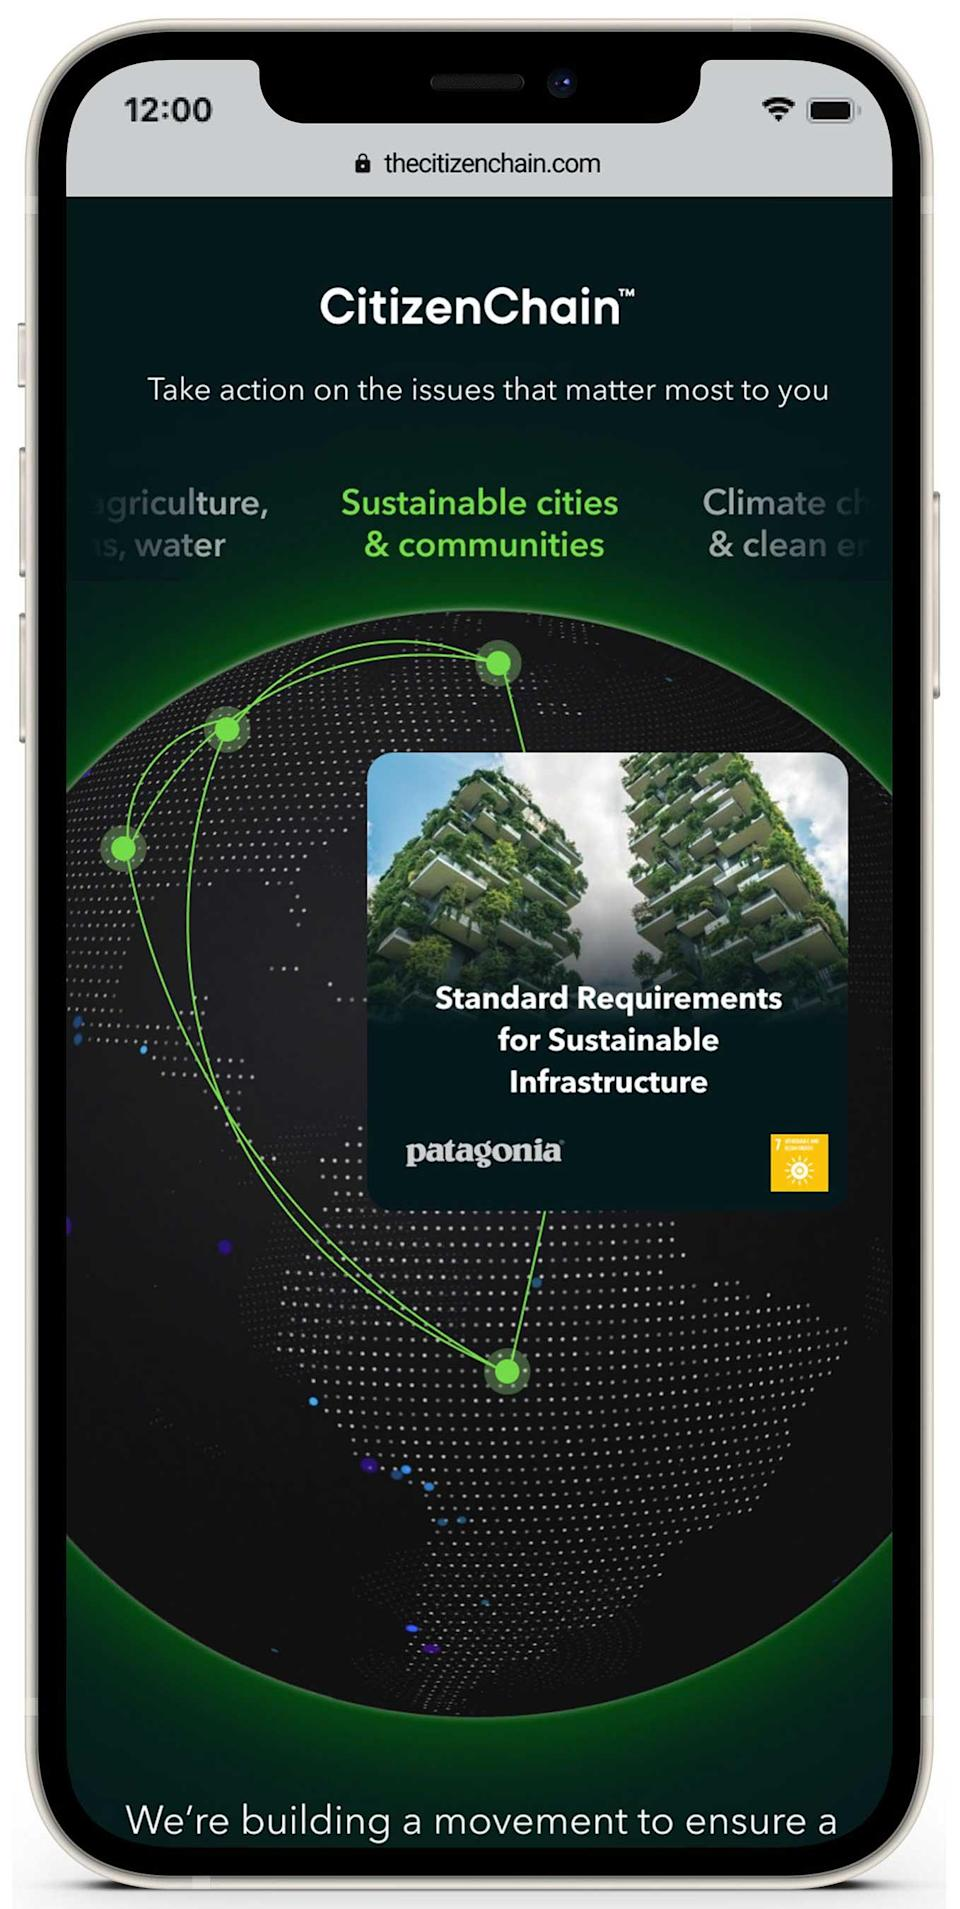 USCS CitizenChain ™ is a new digital platform that gives people the opportunity to lend their voice to support brands and organizations within the SustainChain community on the sustainability issues that matter most to them.